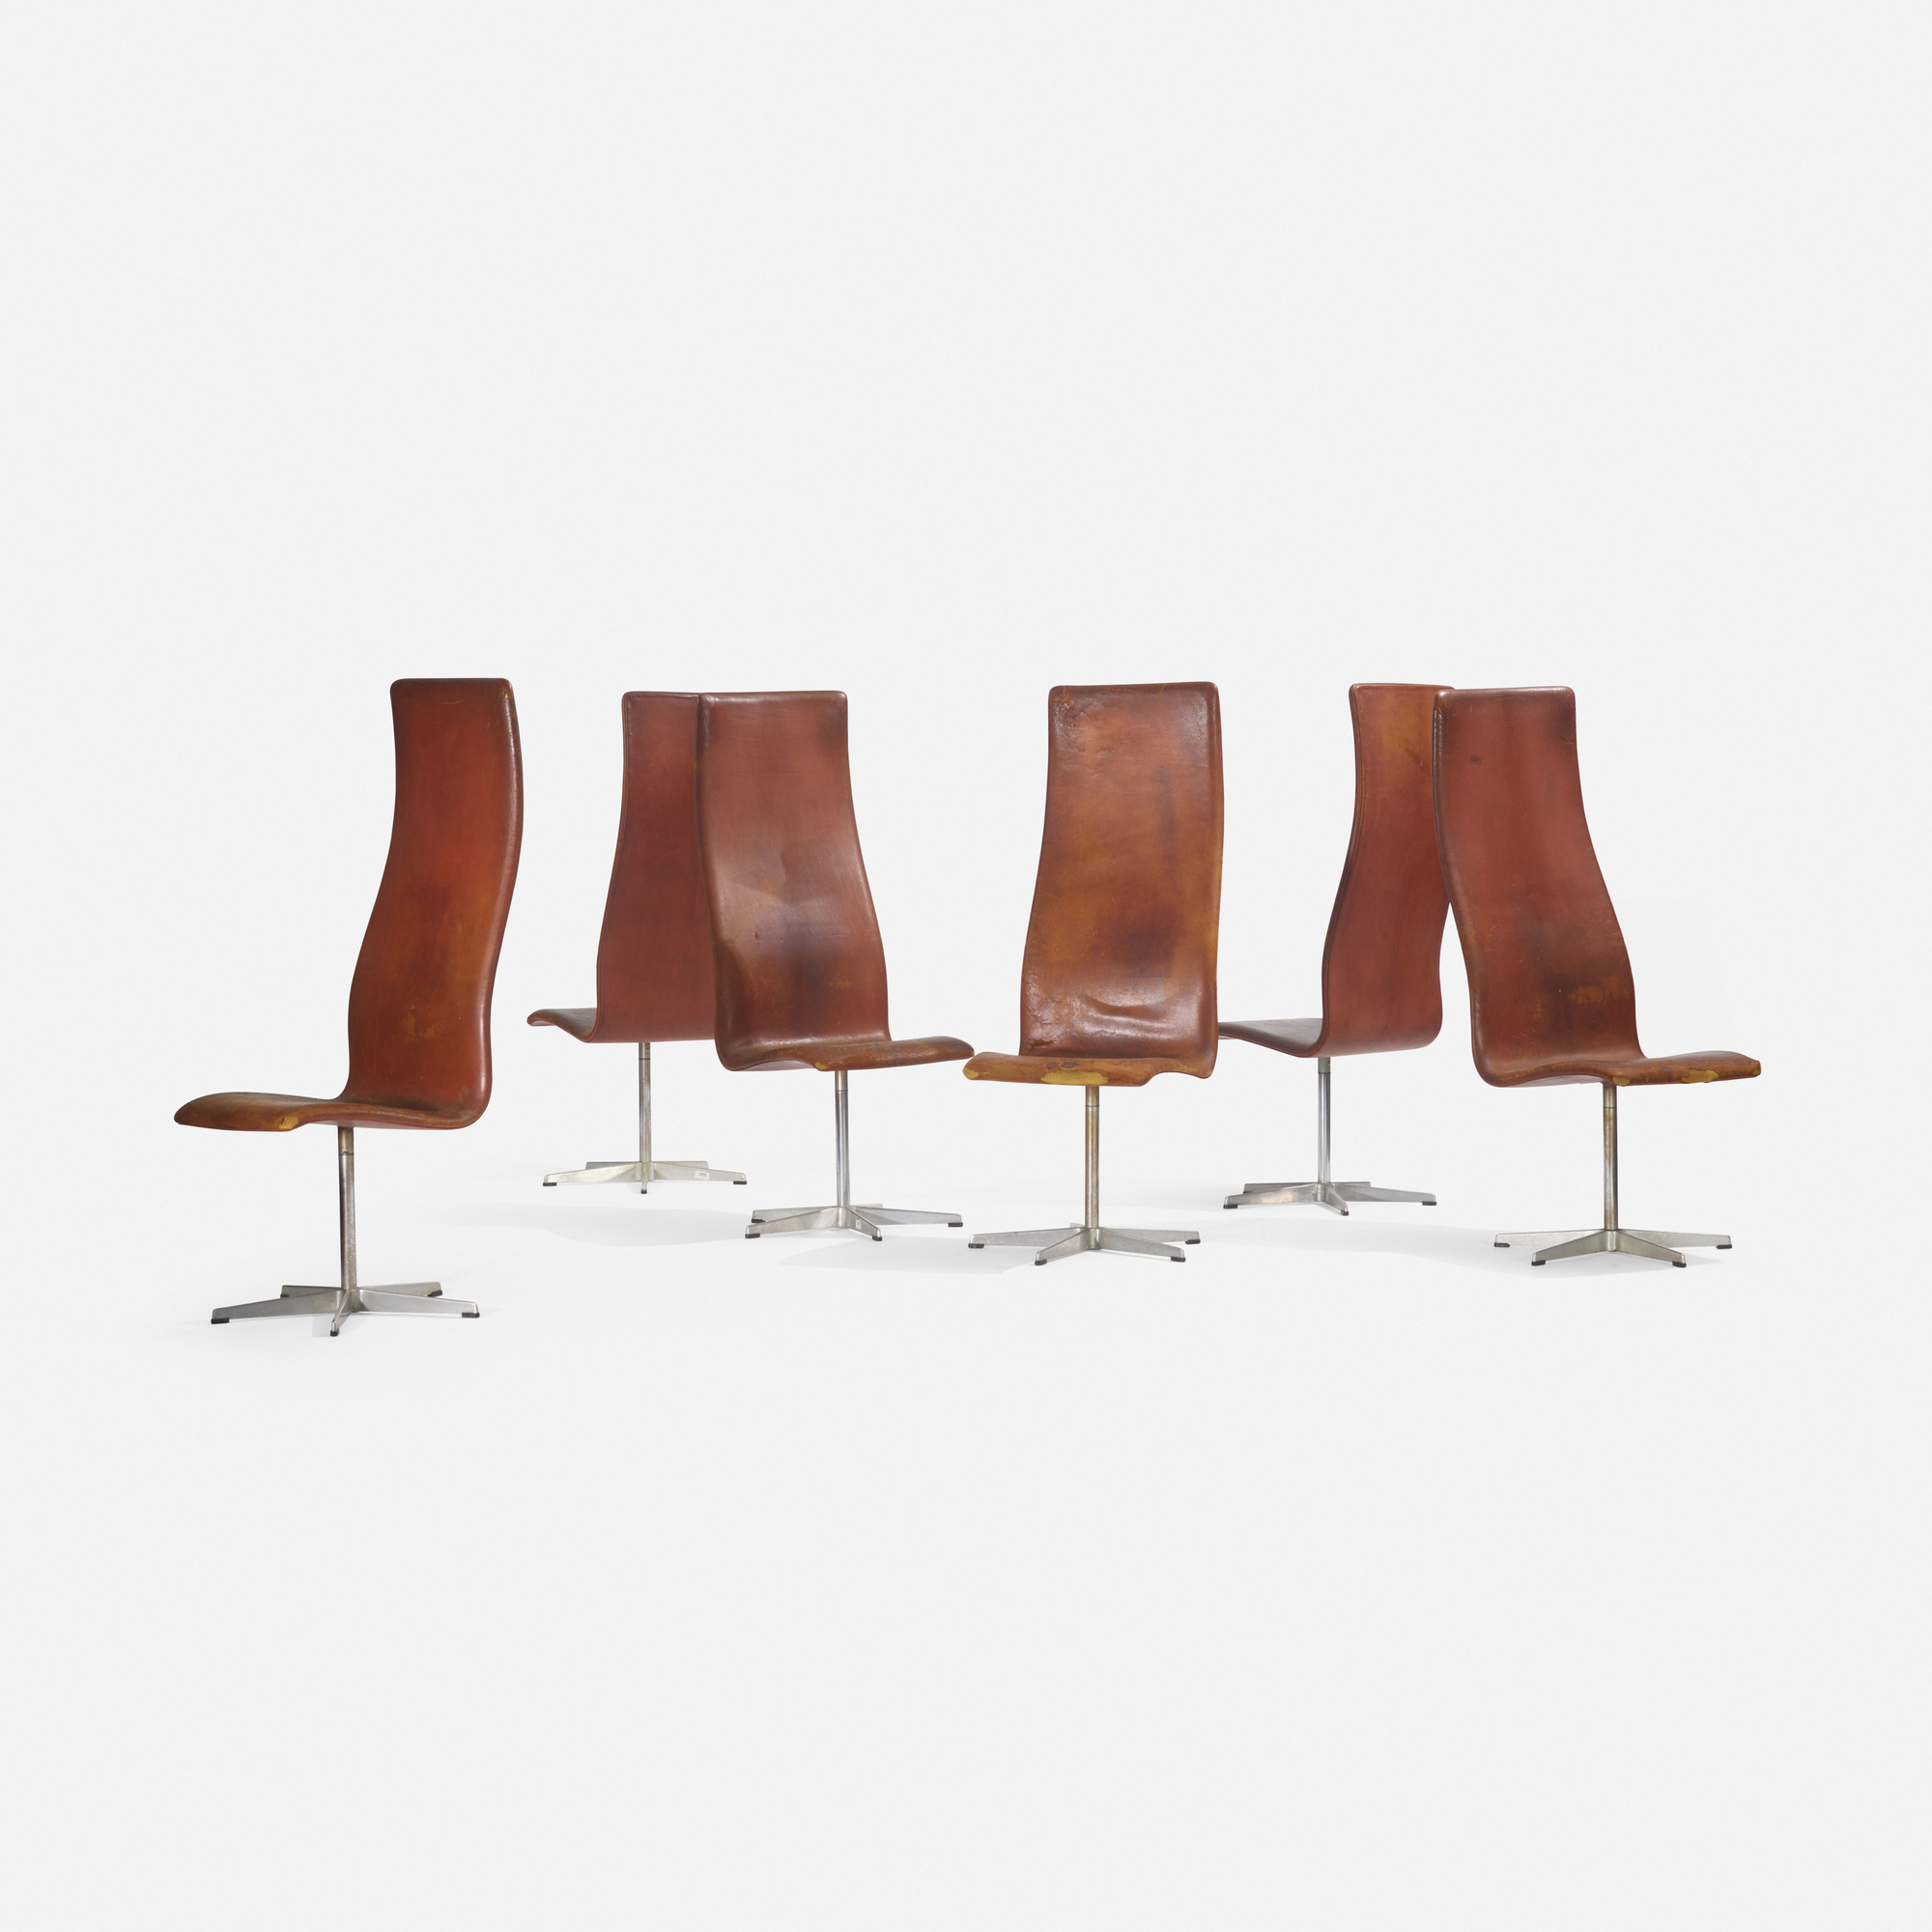 230: Arne Jacobsen / Oxford chairs model 7403, set of six (2 of 3)